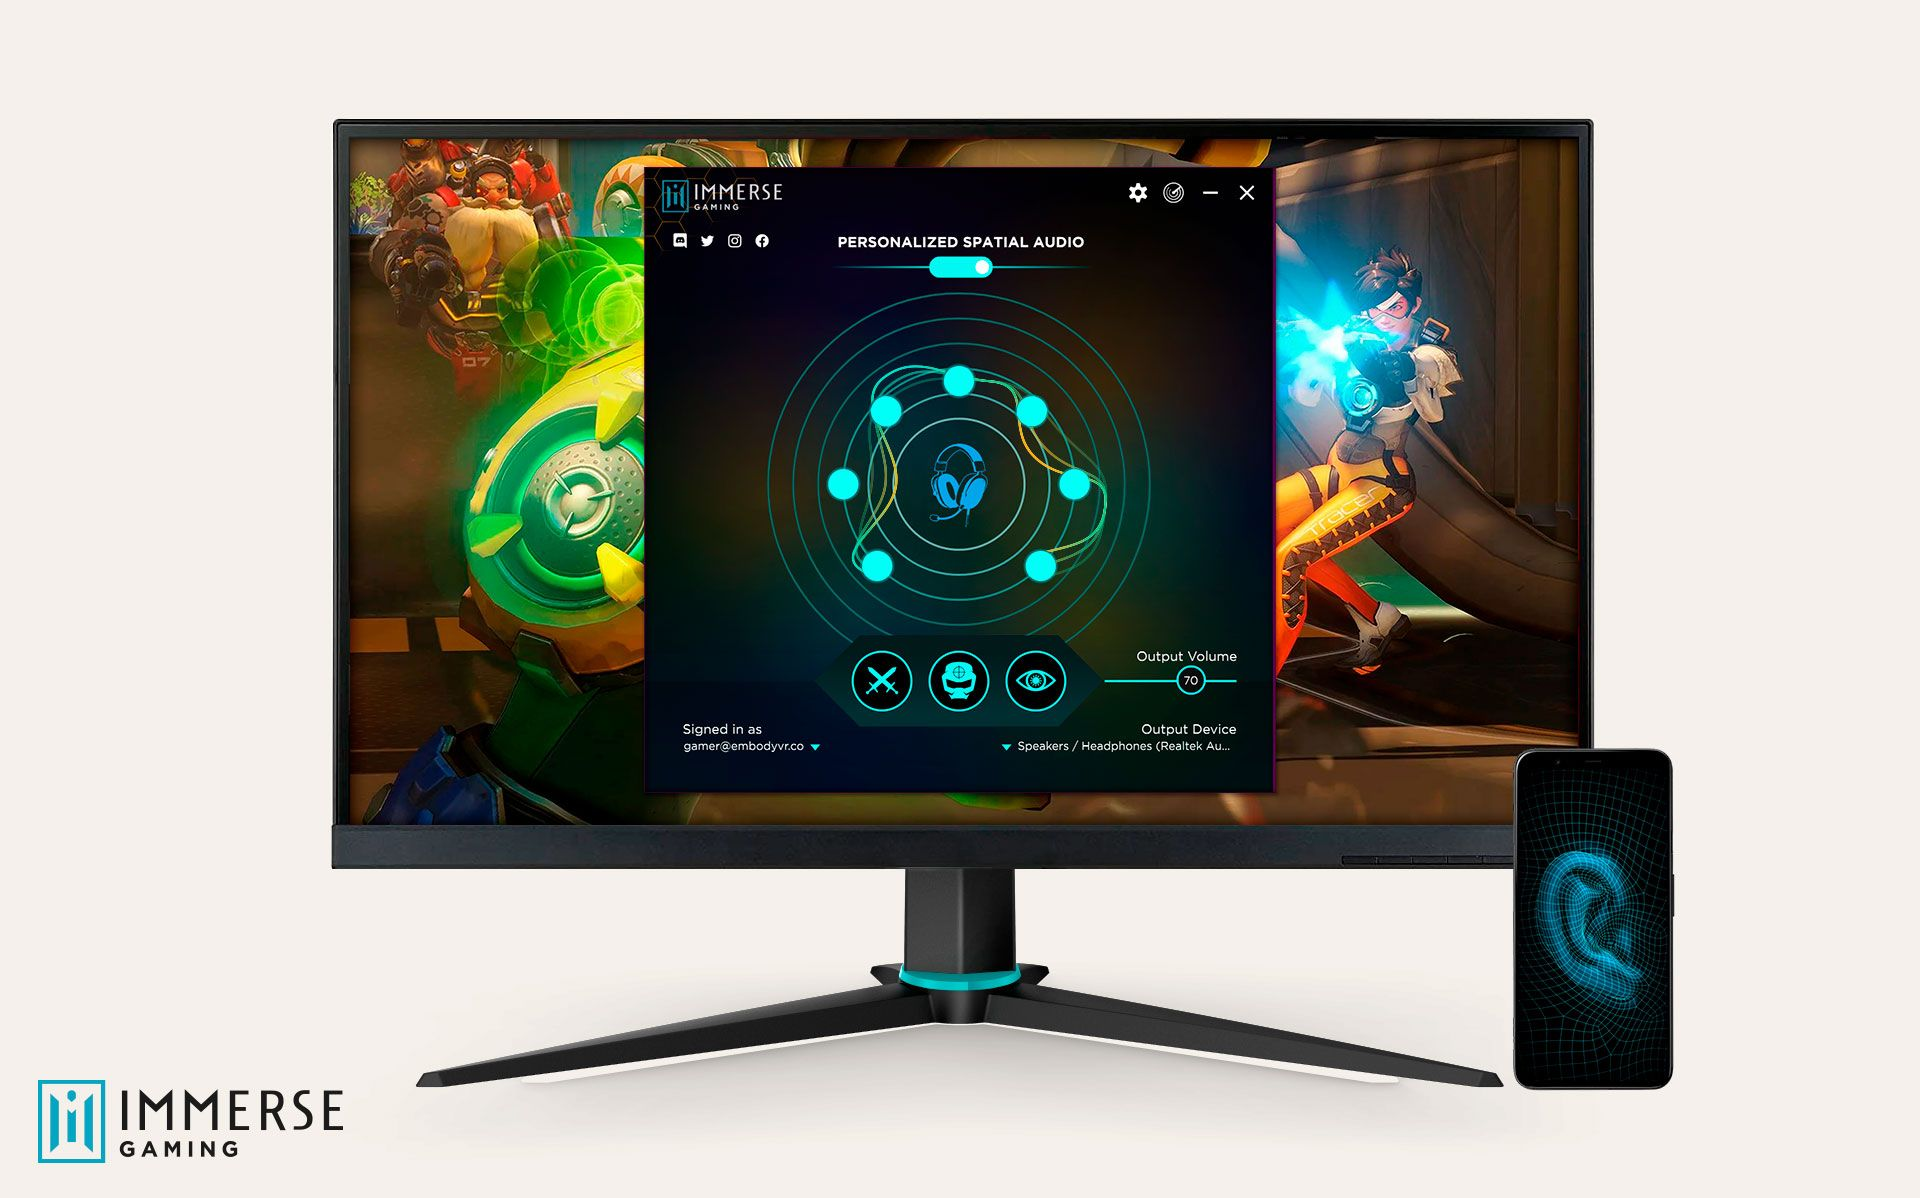 /immersive-gaming-hive-review-a-new-way-to-listen-in-gaming-jd2835ep feature image